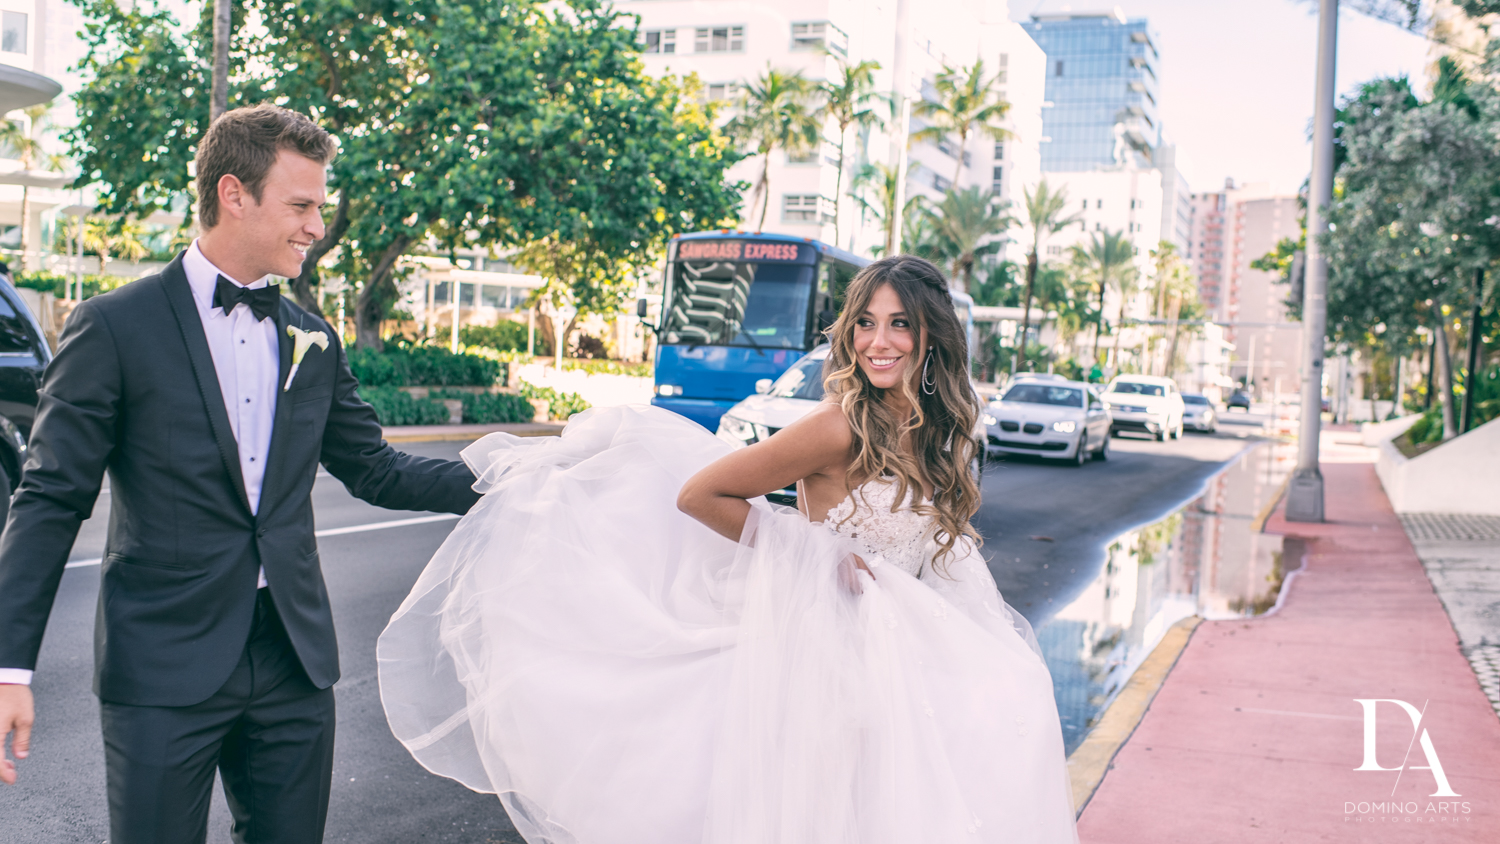 Fun wedding picture of bride and groom at Faena Hotel Miami Beach